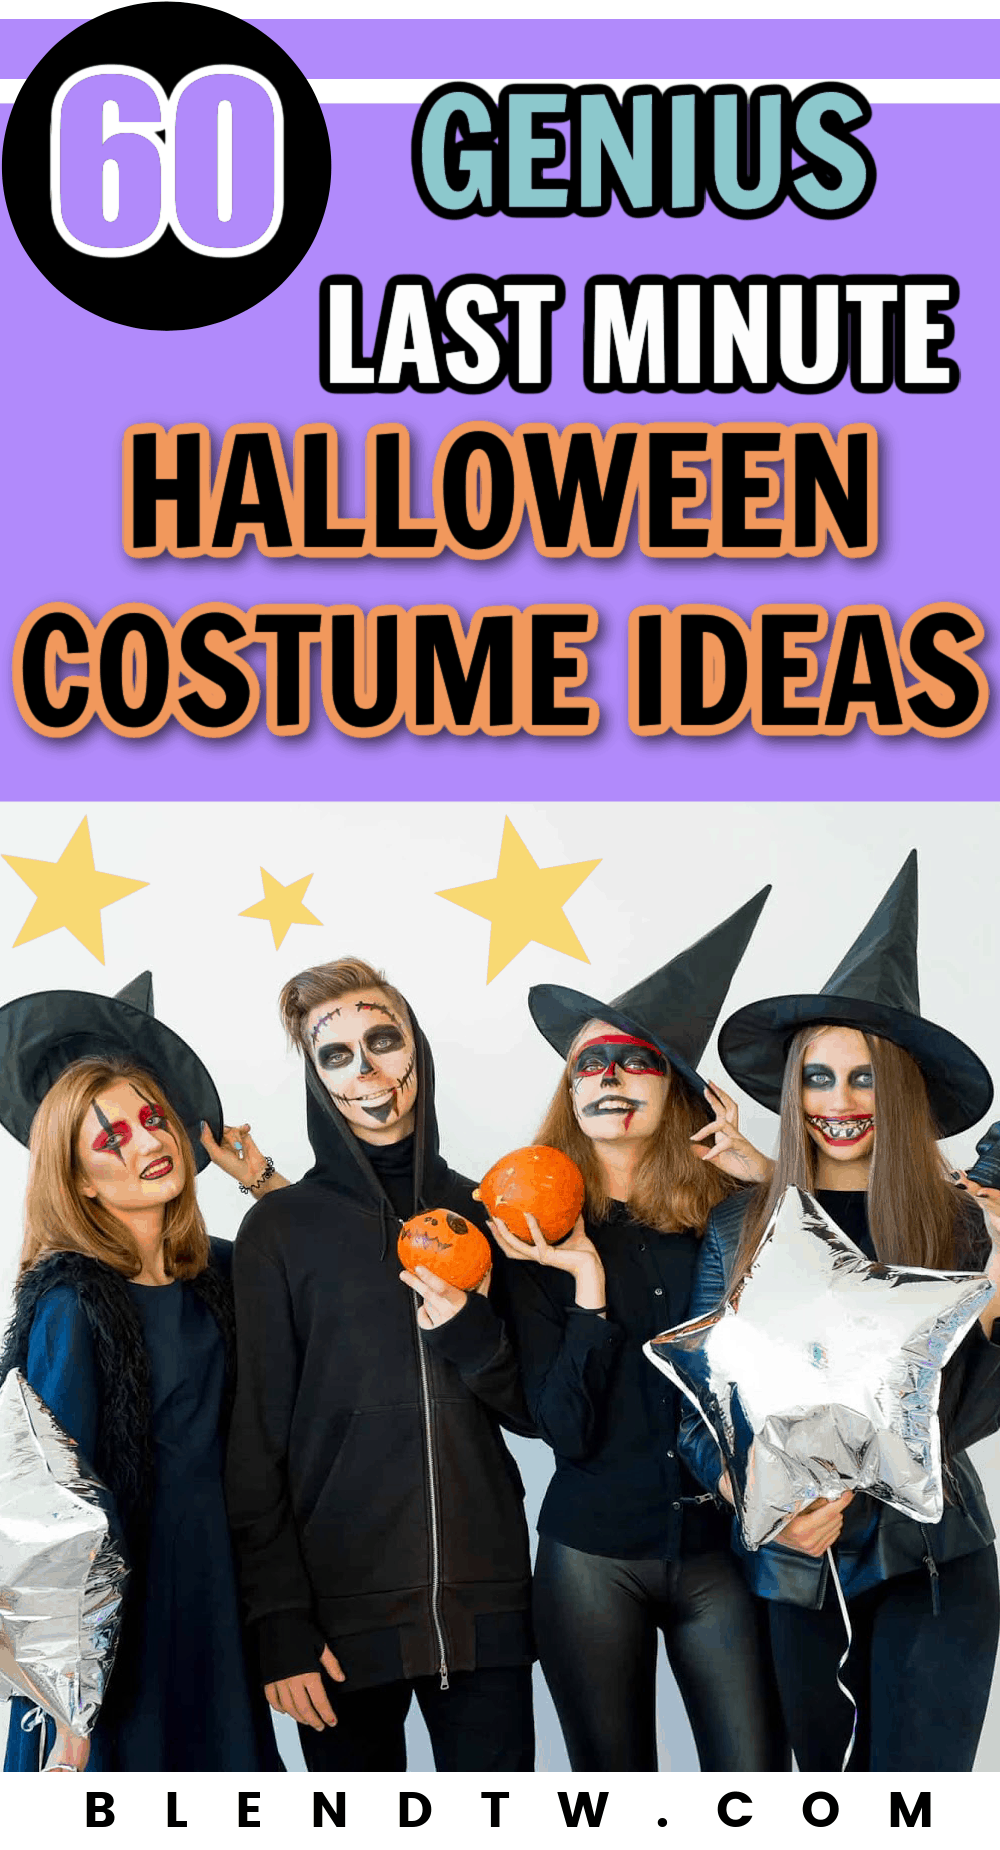 A group of four college students wearing last minute halloween costumes